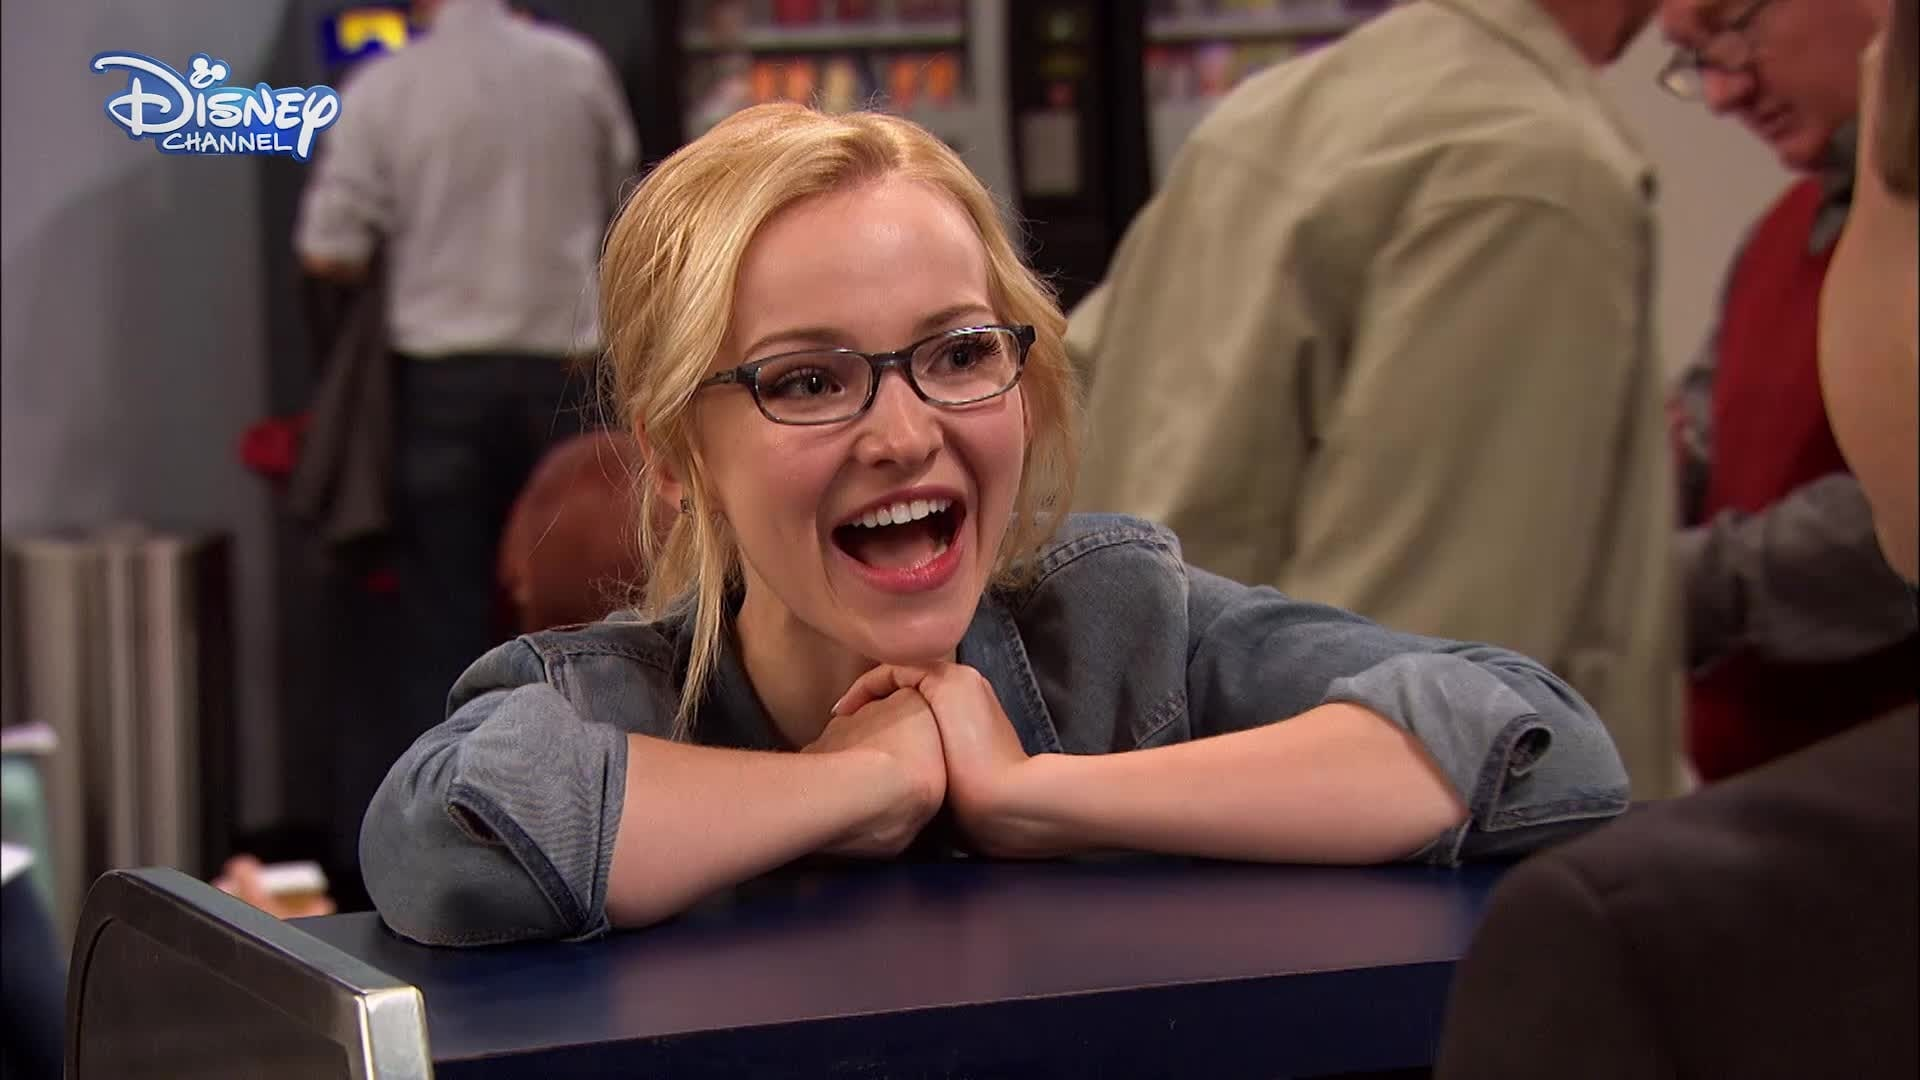 Disney channel coloring pages liv and maddie - Disney Channel Coloring Pages Liv And Maddie 52